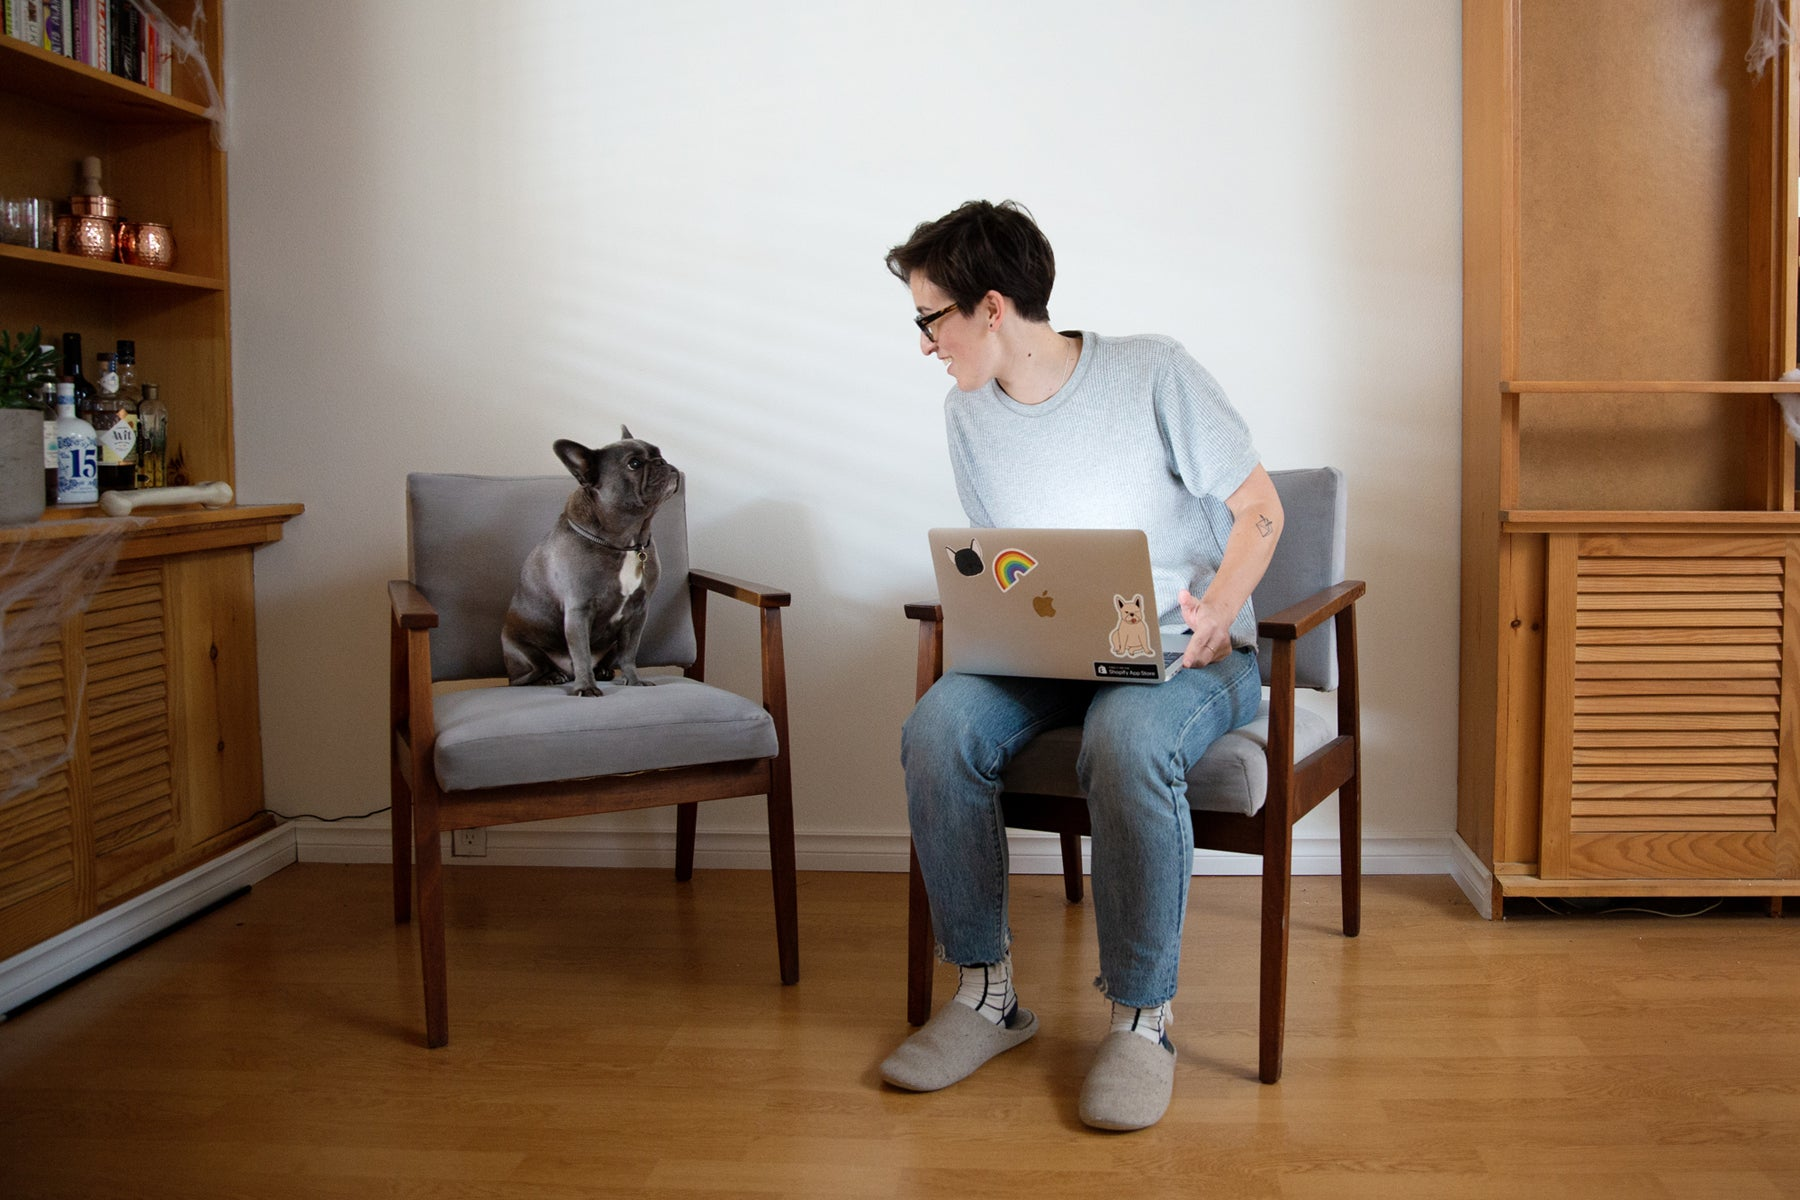 Passionfruit founder Liz Bertorelli sits with her laptop. Her french bulldog Olive sits beside her.